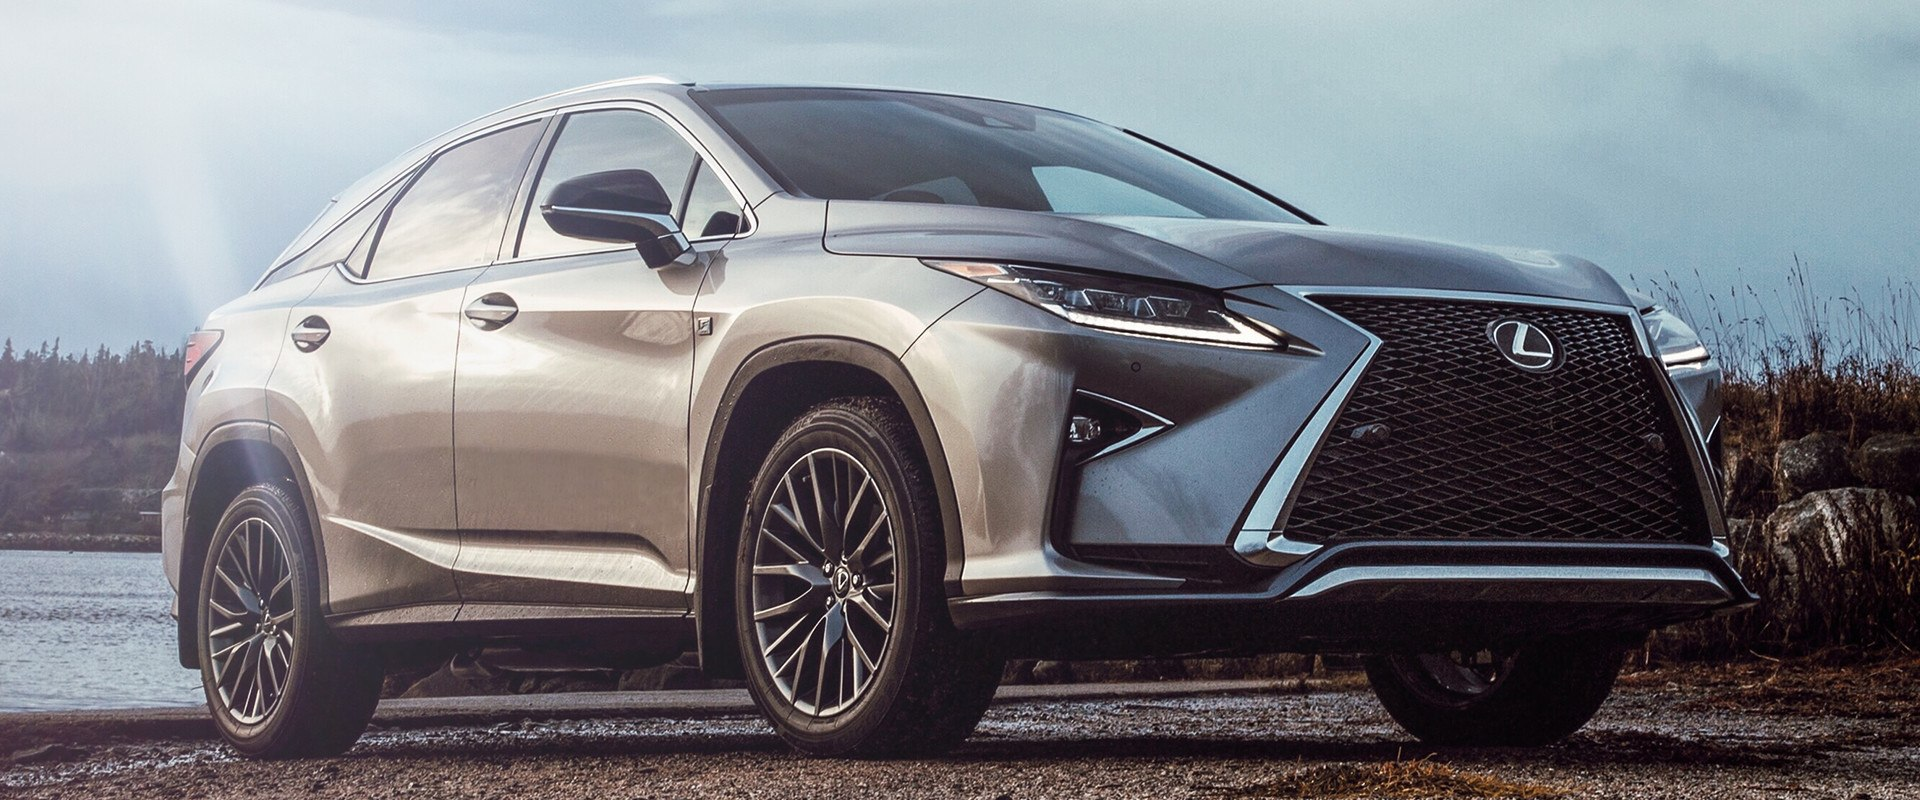 2018 Lexus RX at Ken Shaw Lexus in the Greater Toronto Area GTA, Ontario, Canada